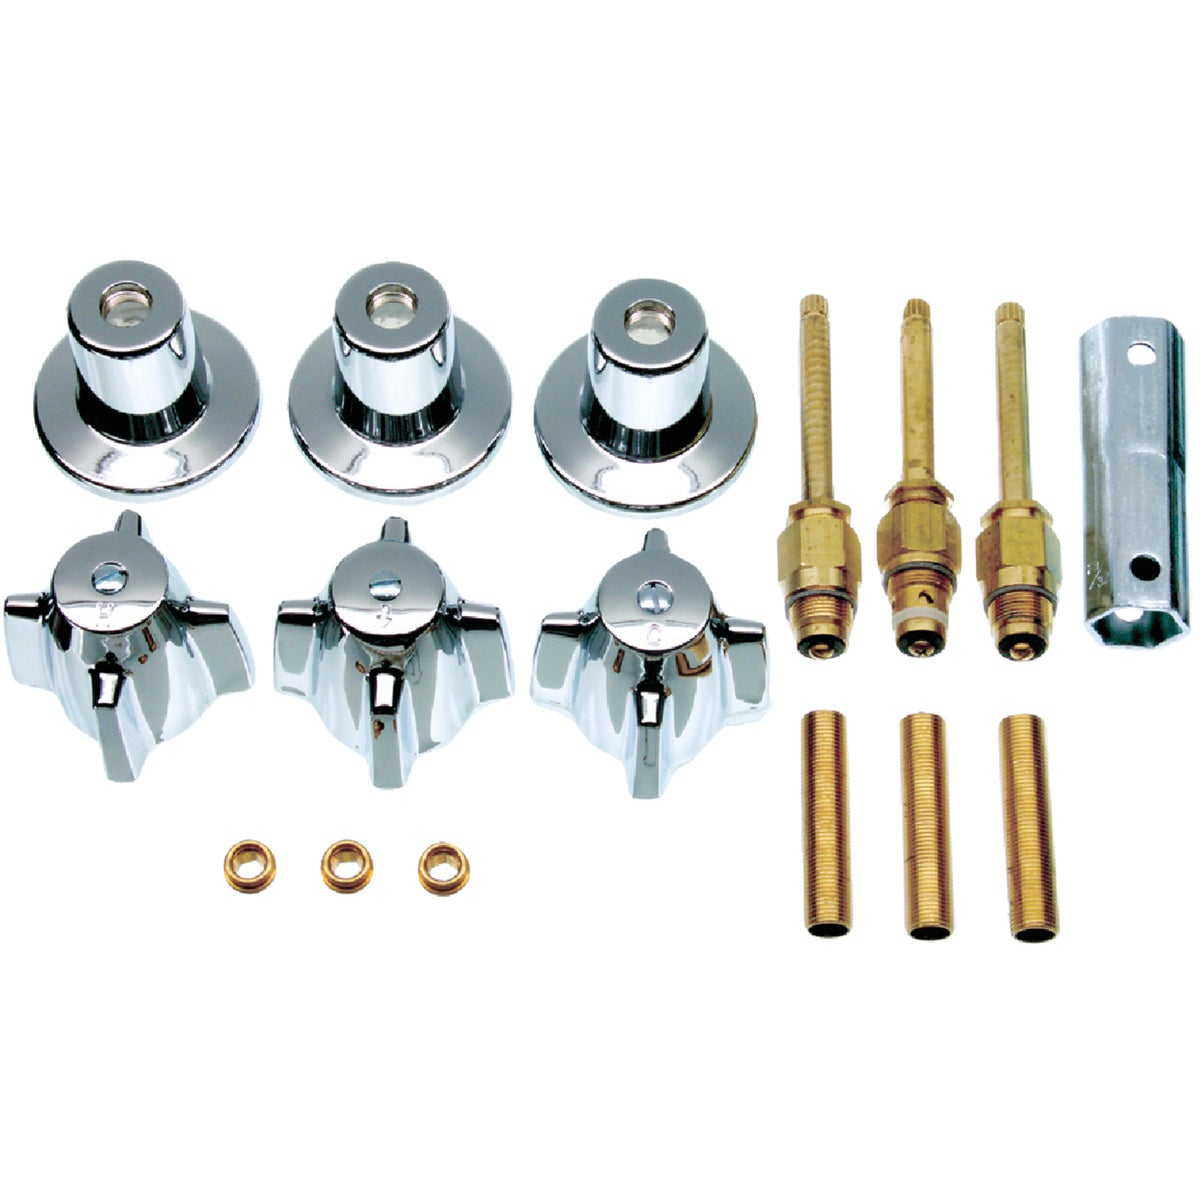 CENTRAL BRASS REPAIR KIT